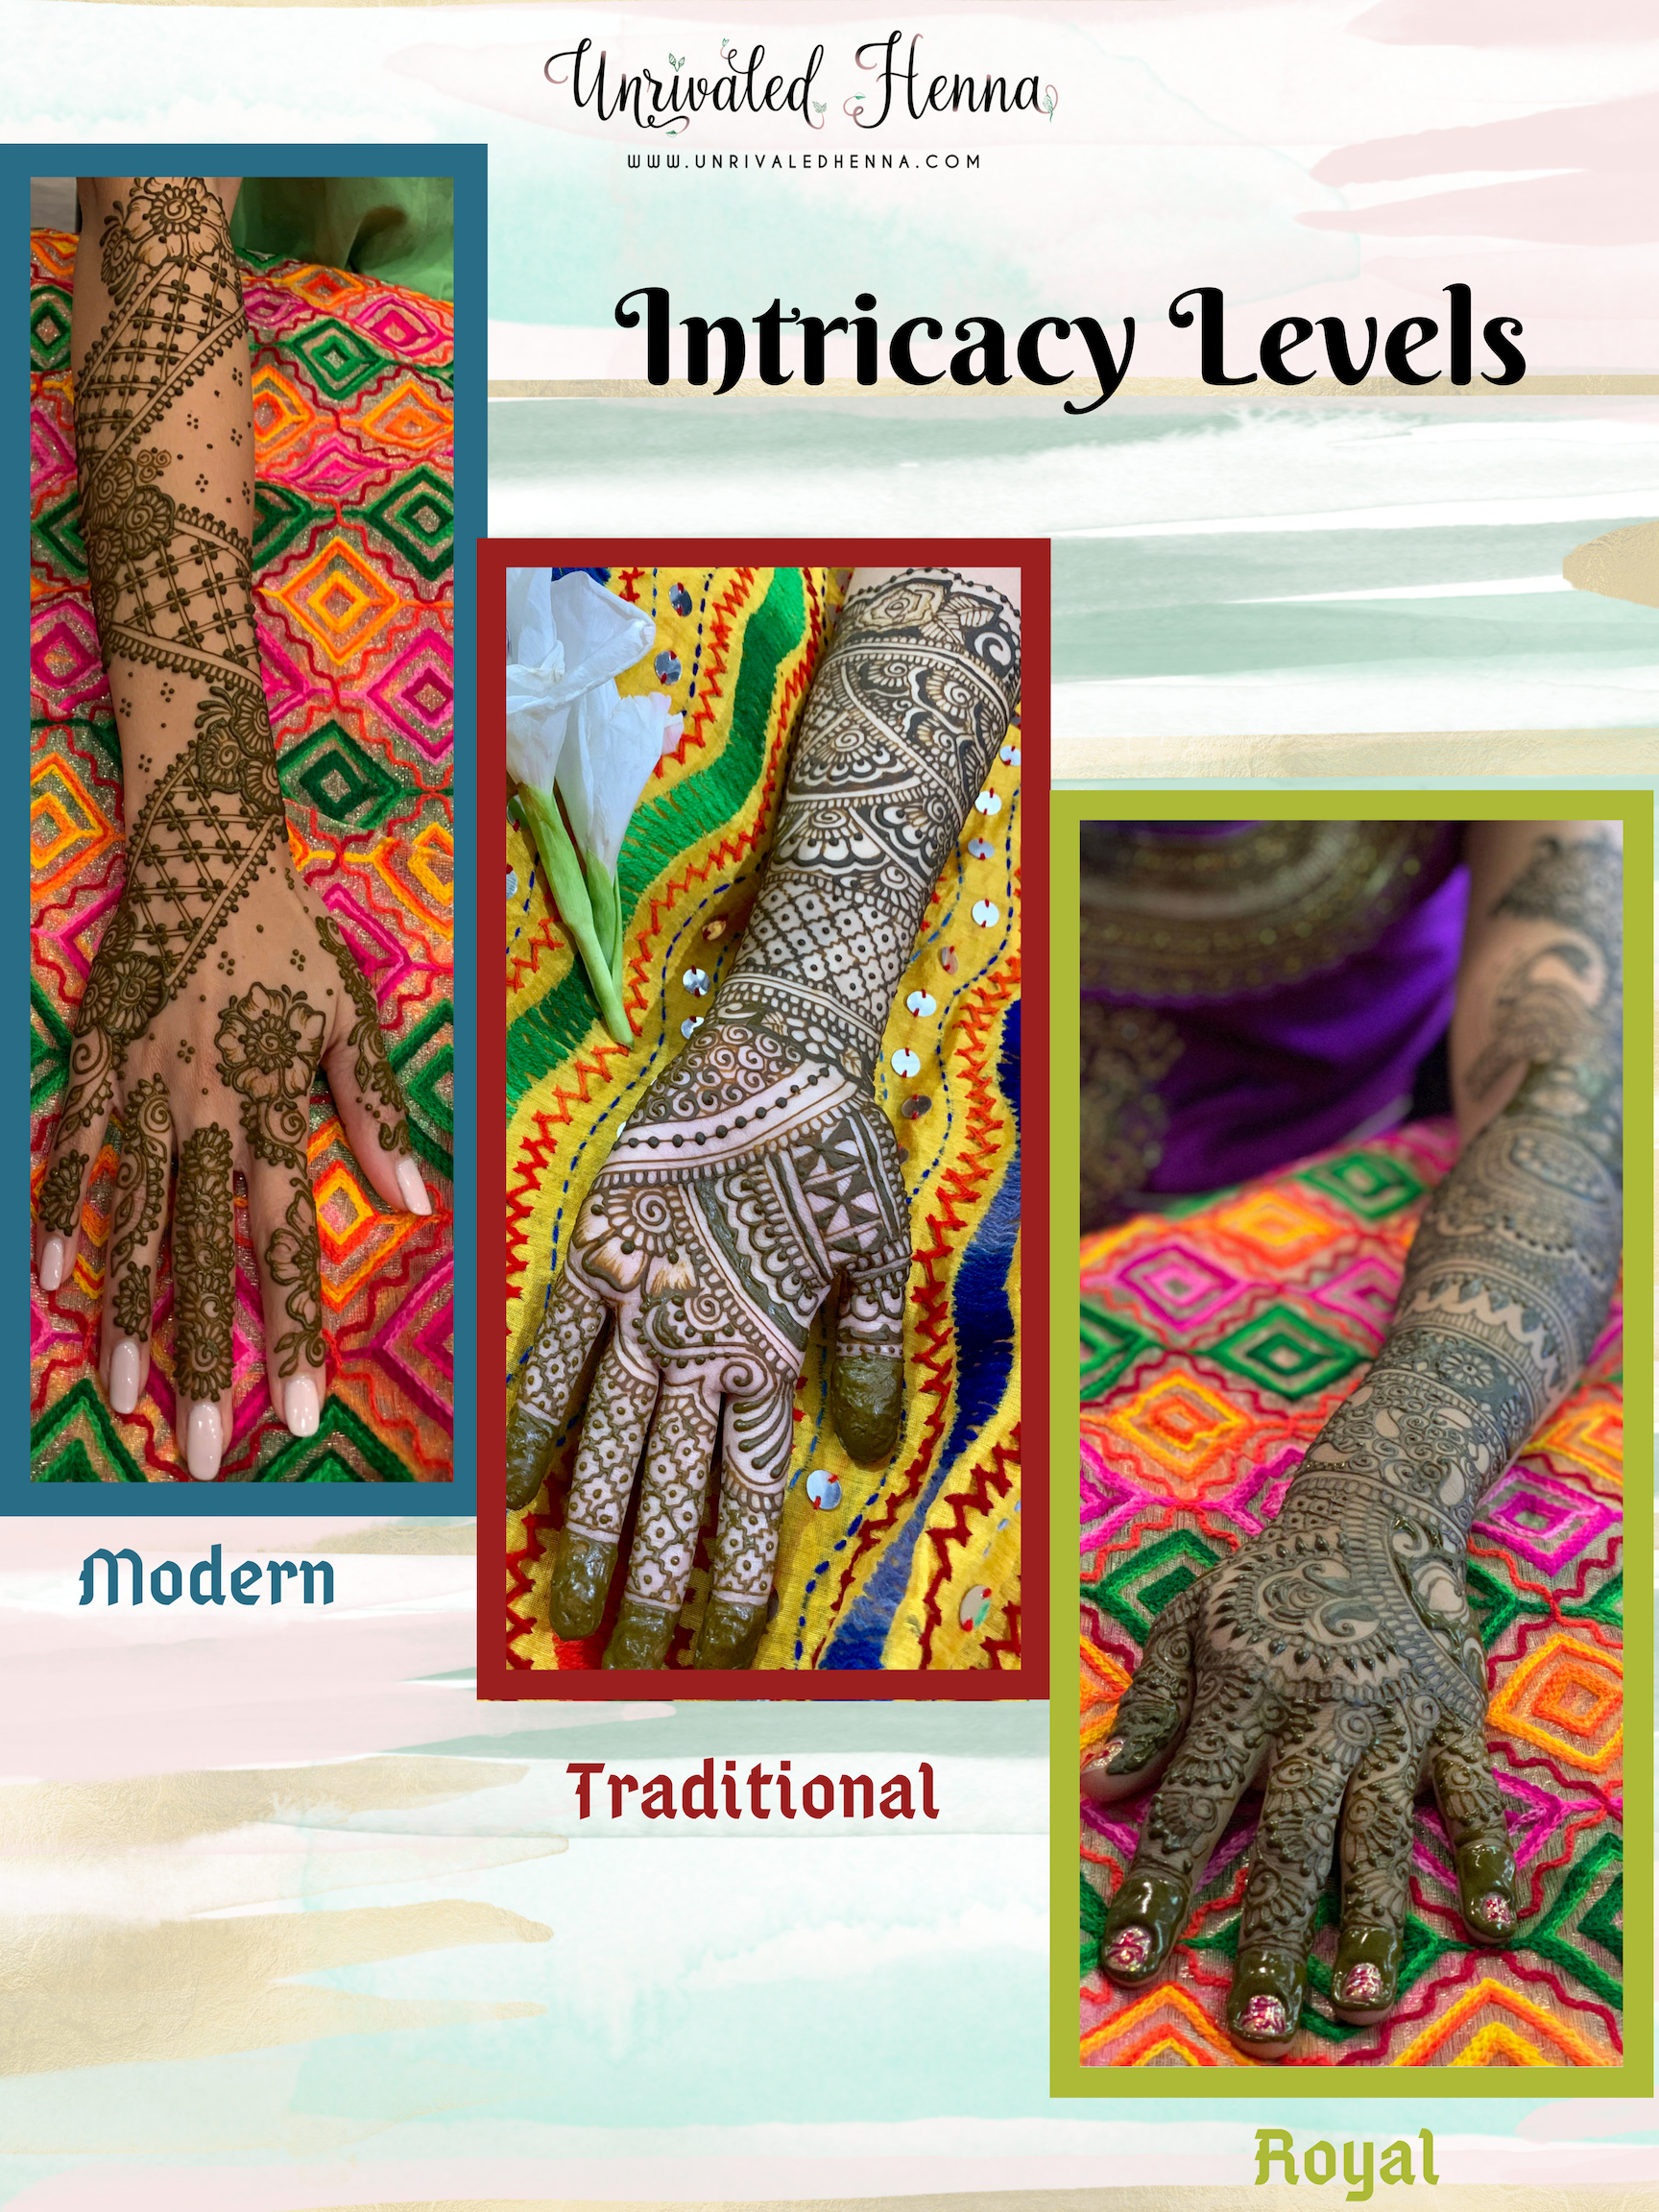 BRIDAL HENNA - Modern Henna Coverage: $150 - $250+Traditional Henna Coverage: $200 - $350+Royal Henna Coverage: $250 - $450+Displayed Bridal pricing indicates both hands/arms (all four sides) and both feet/legs.A customized design can be created for you to fit your style, budget and preference :)